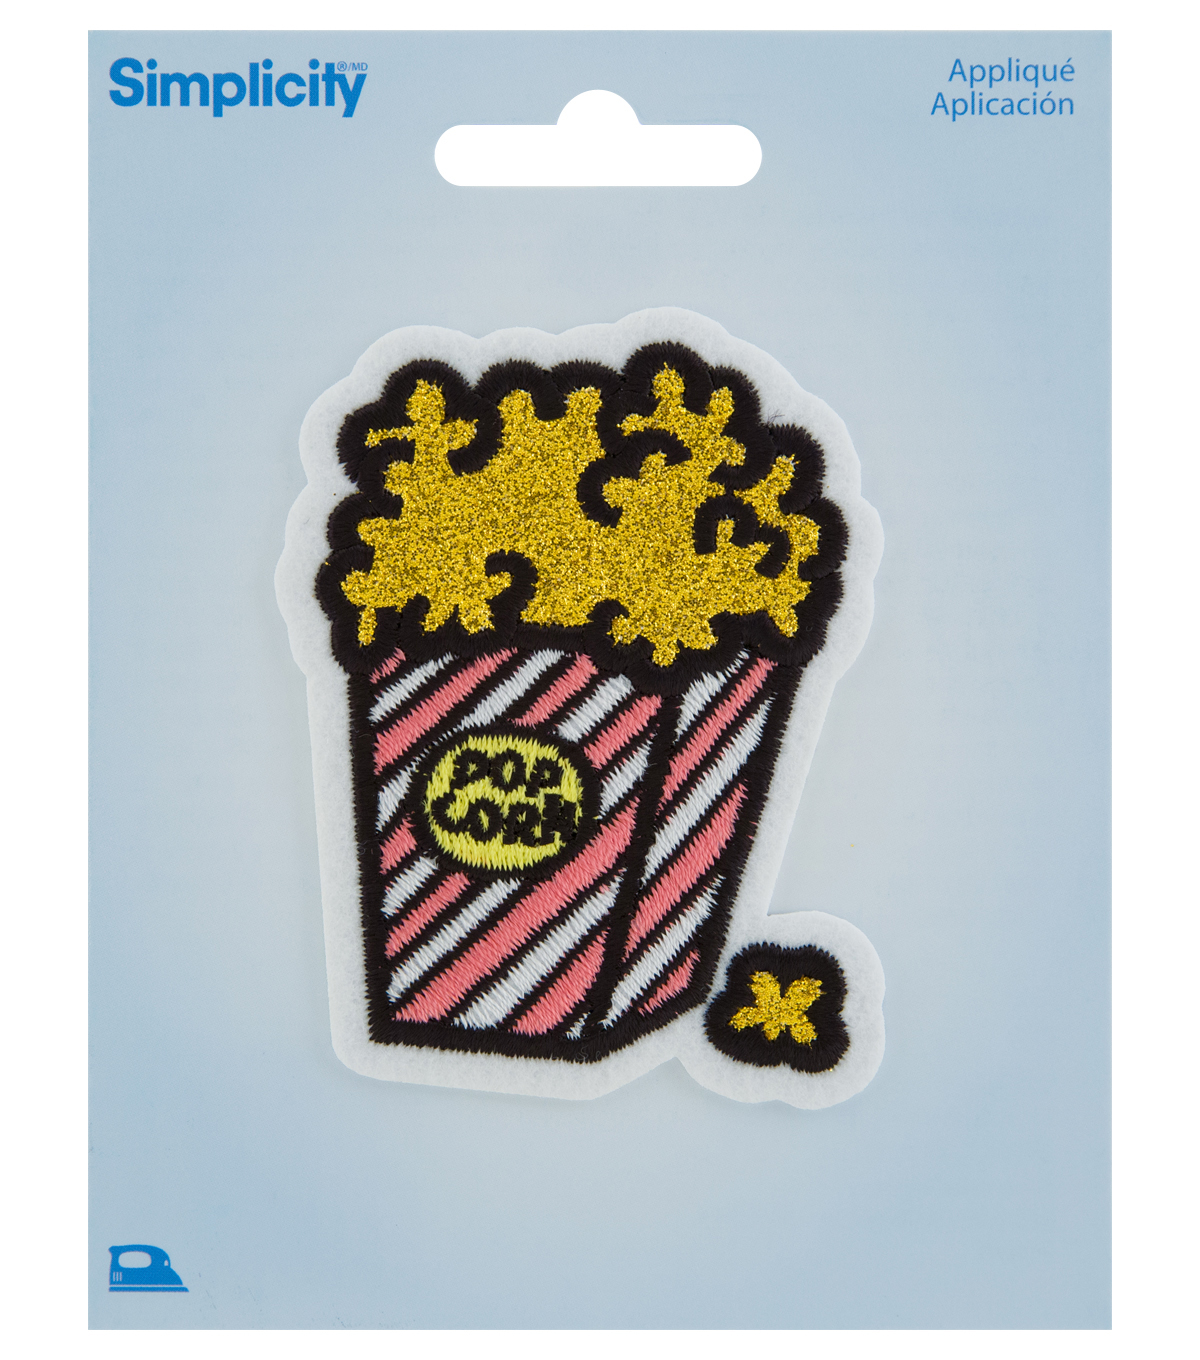 Simplicity Gold Glitter Popcorn Iron-on Applique